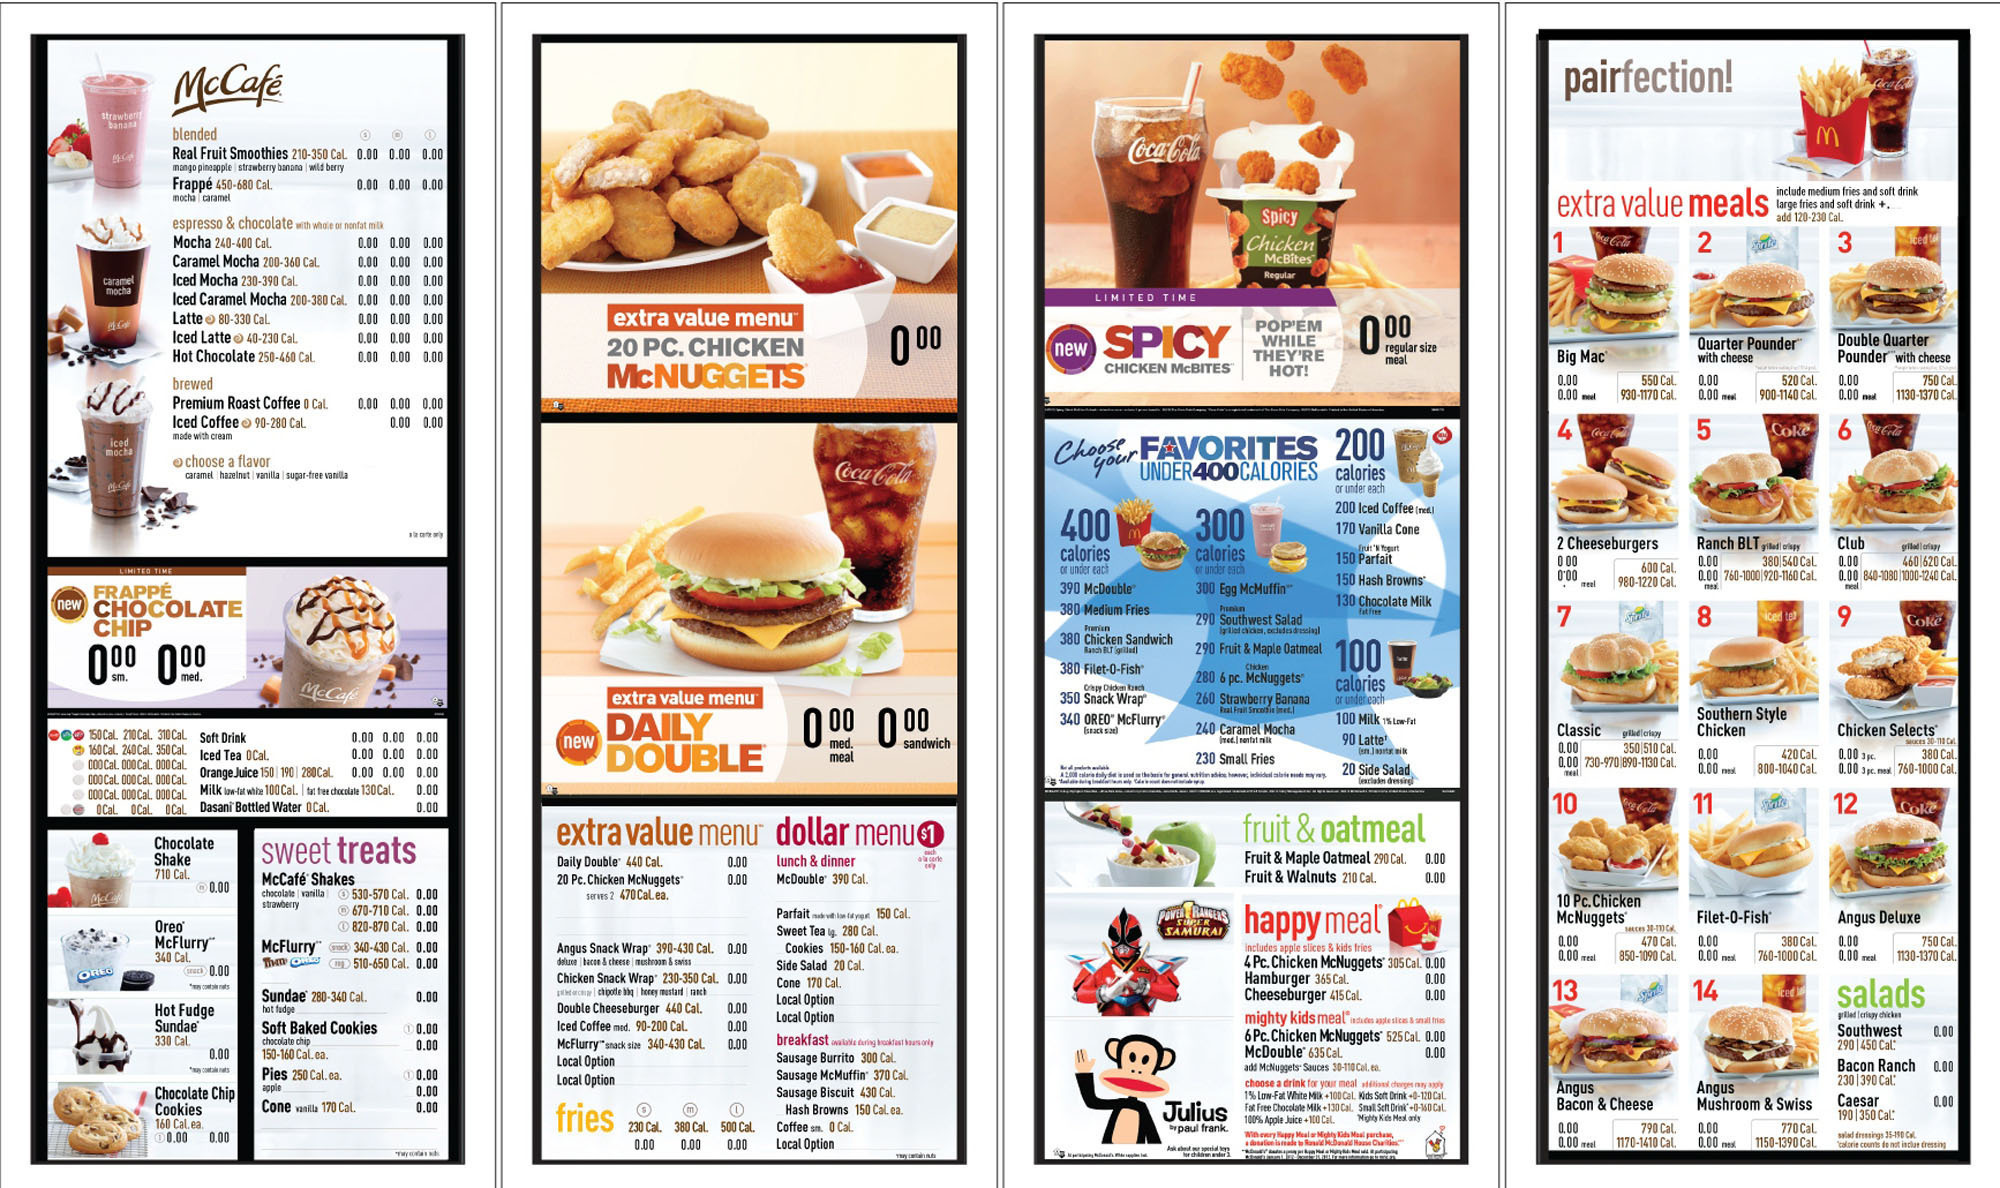 5 Images of McDonald's Restaurant Printable Restaurant